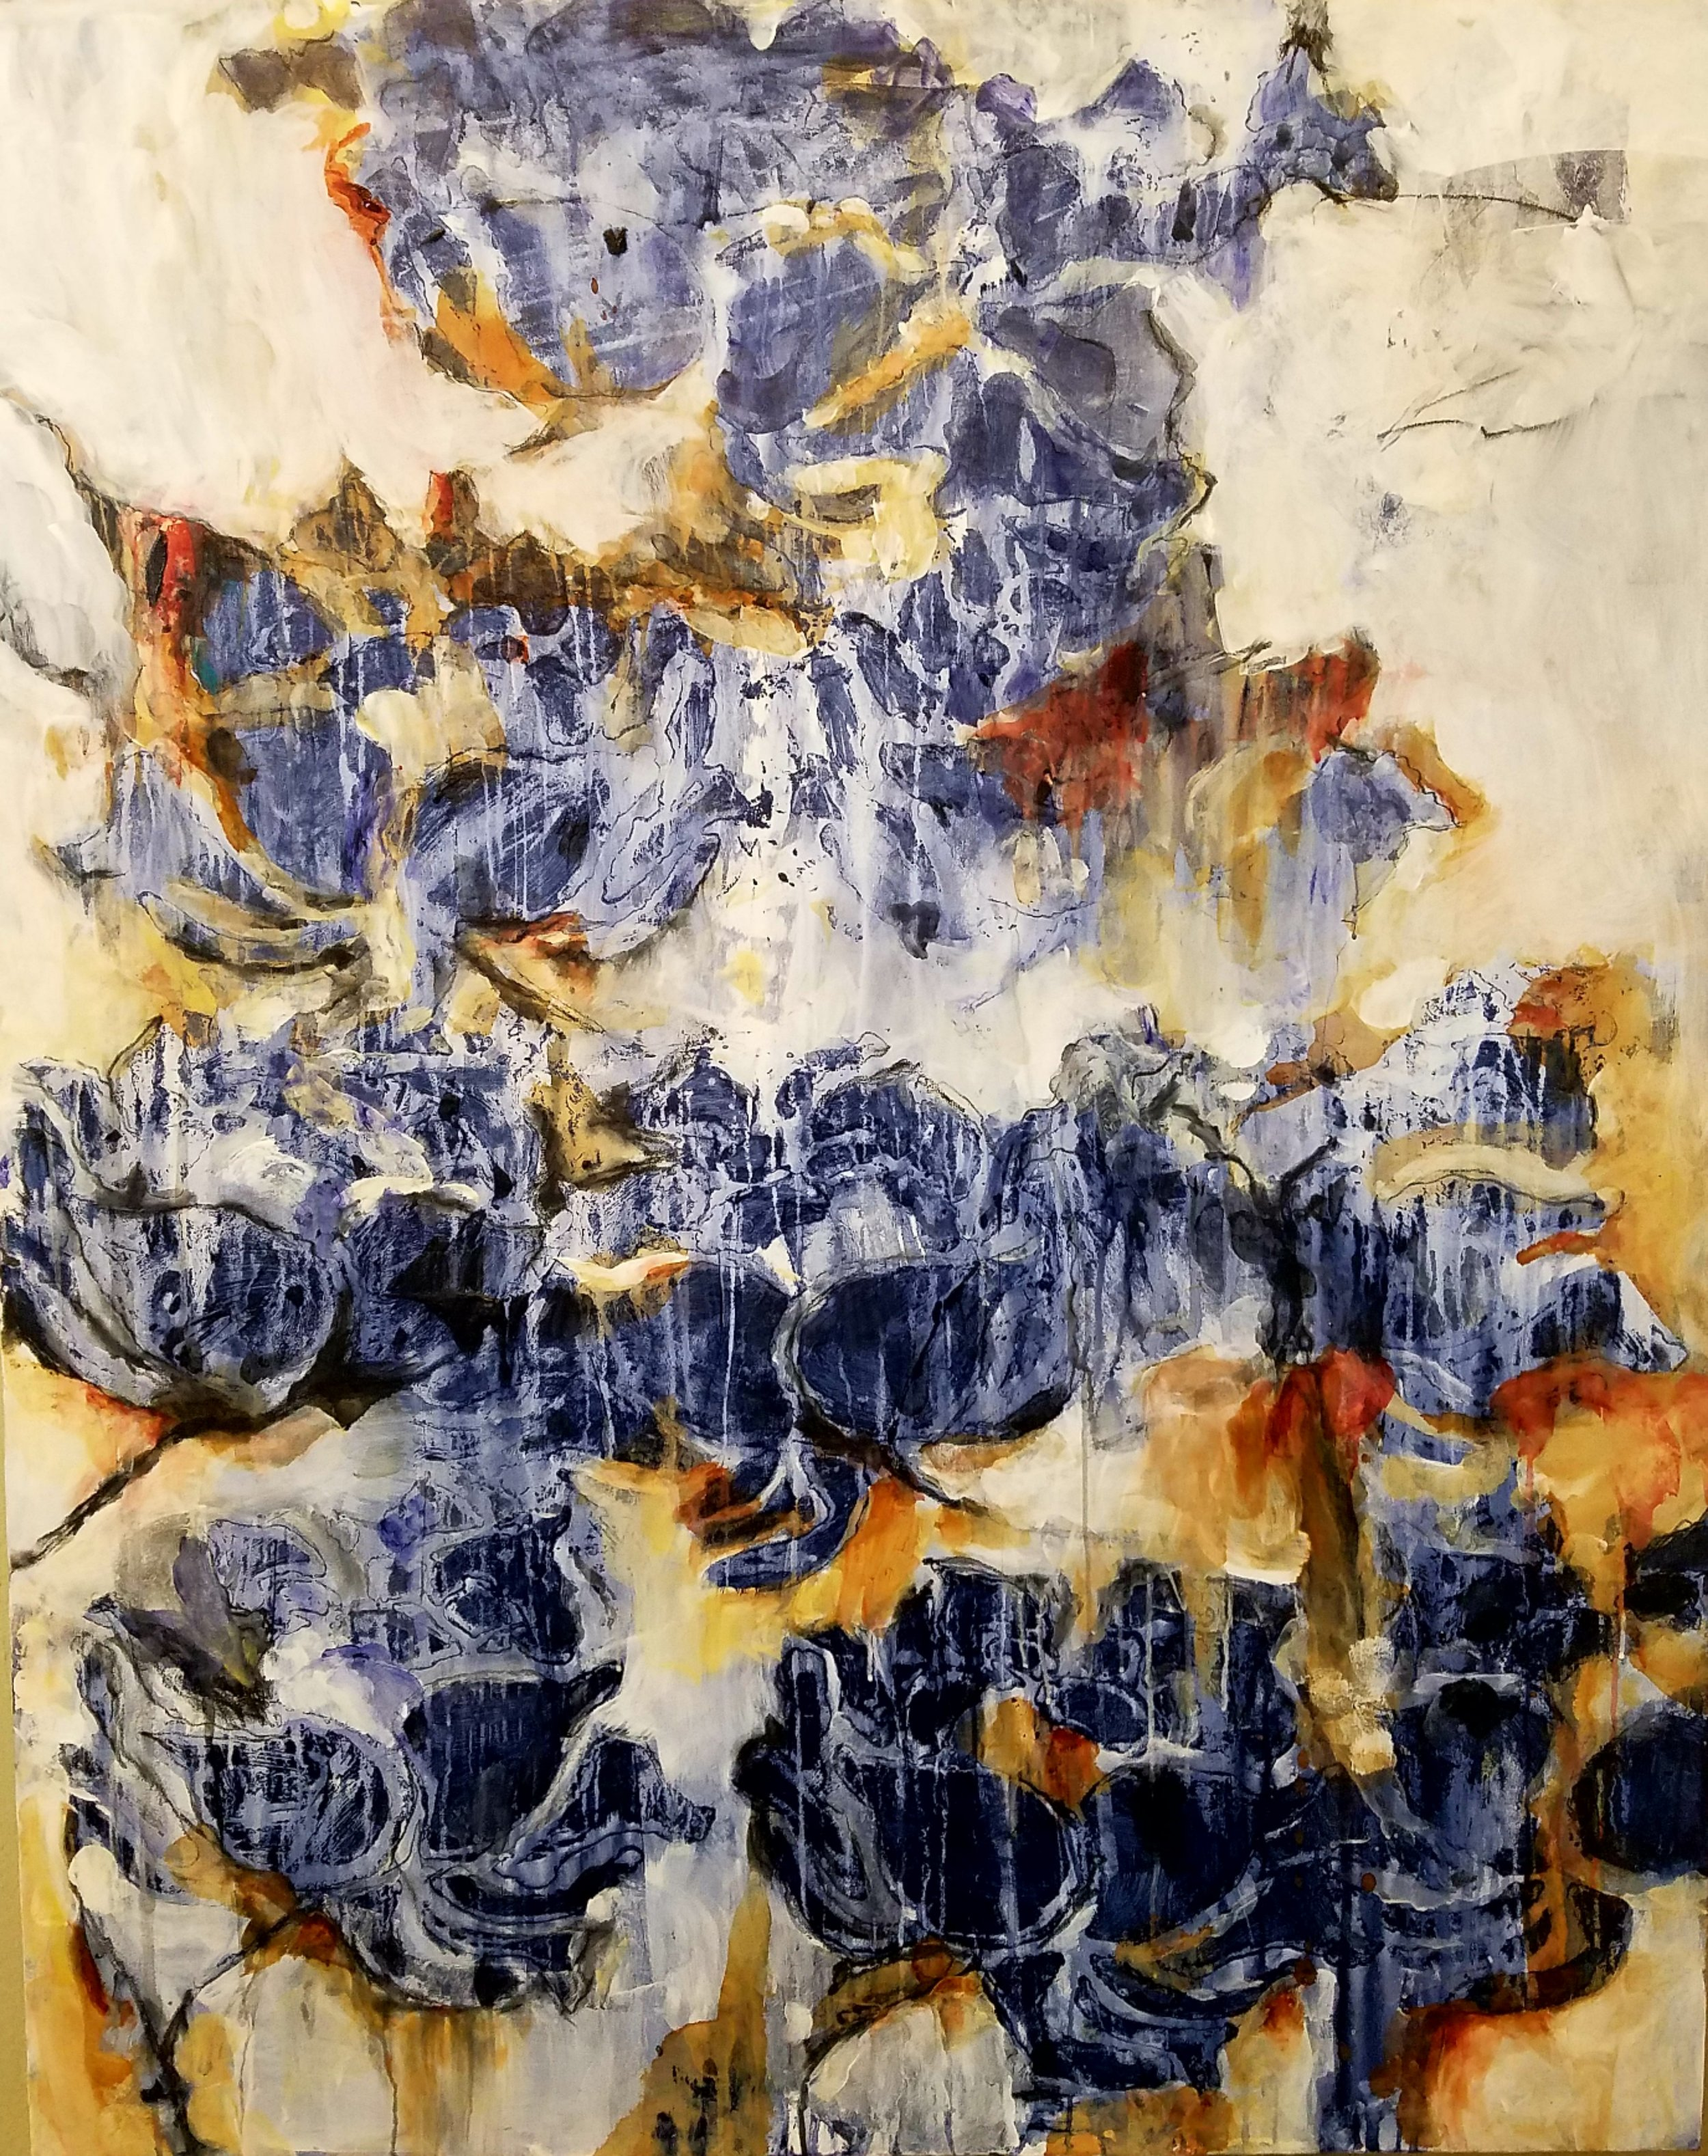 Diane Williams_Blue Willow_48 in x 60 in_acrylic, rust and Stabilo pencil on canvas.jpg